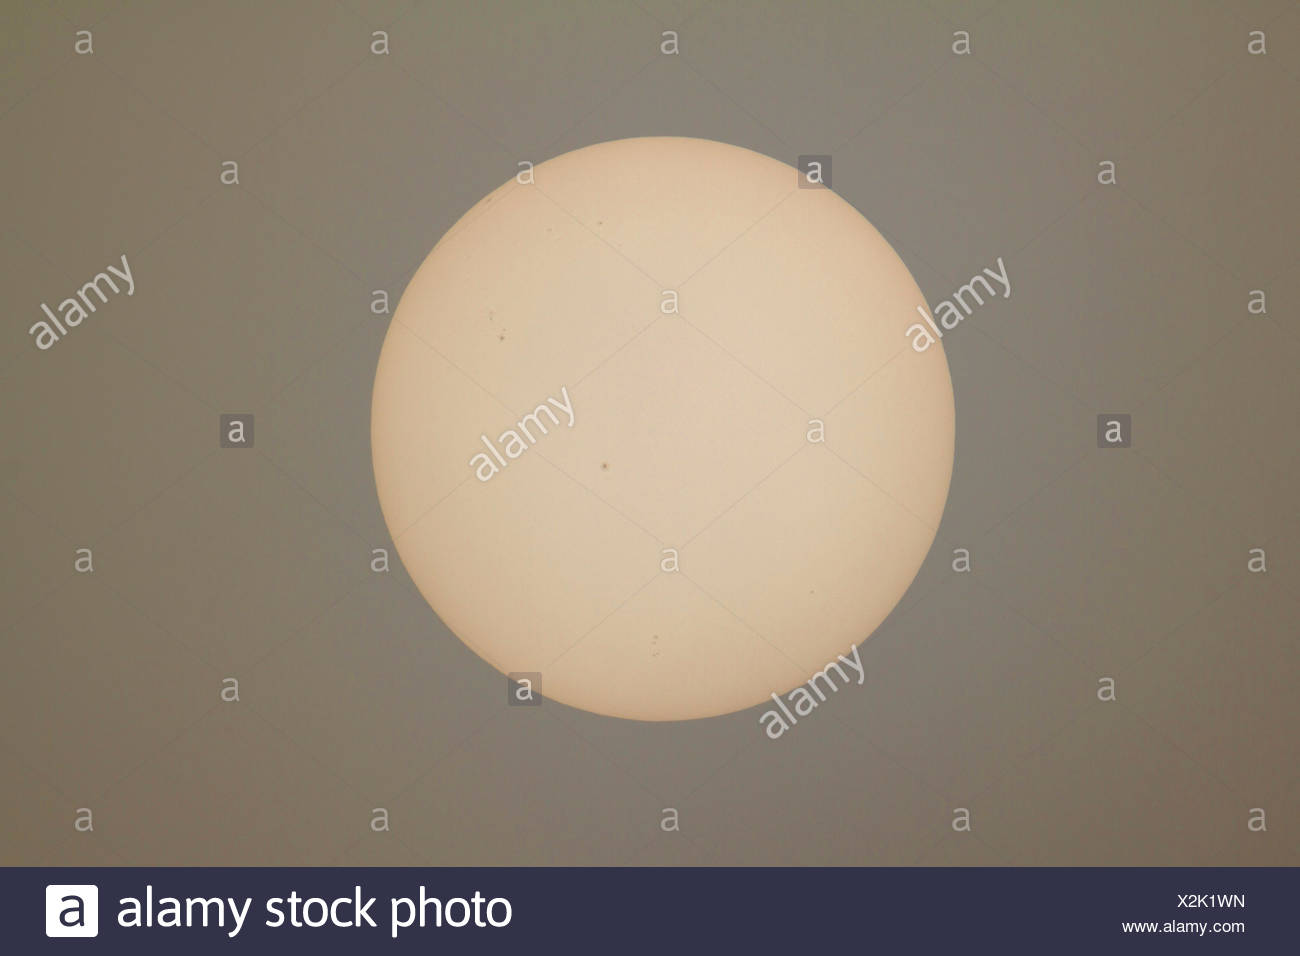 sun with sunspots, Germany, Bavaria - Stock Image